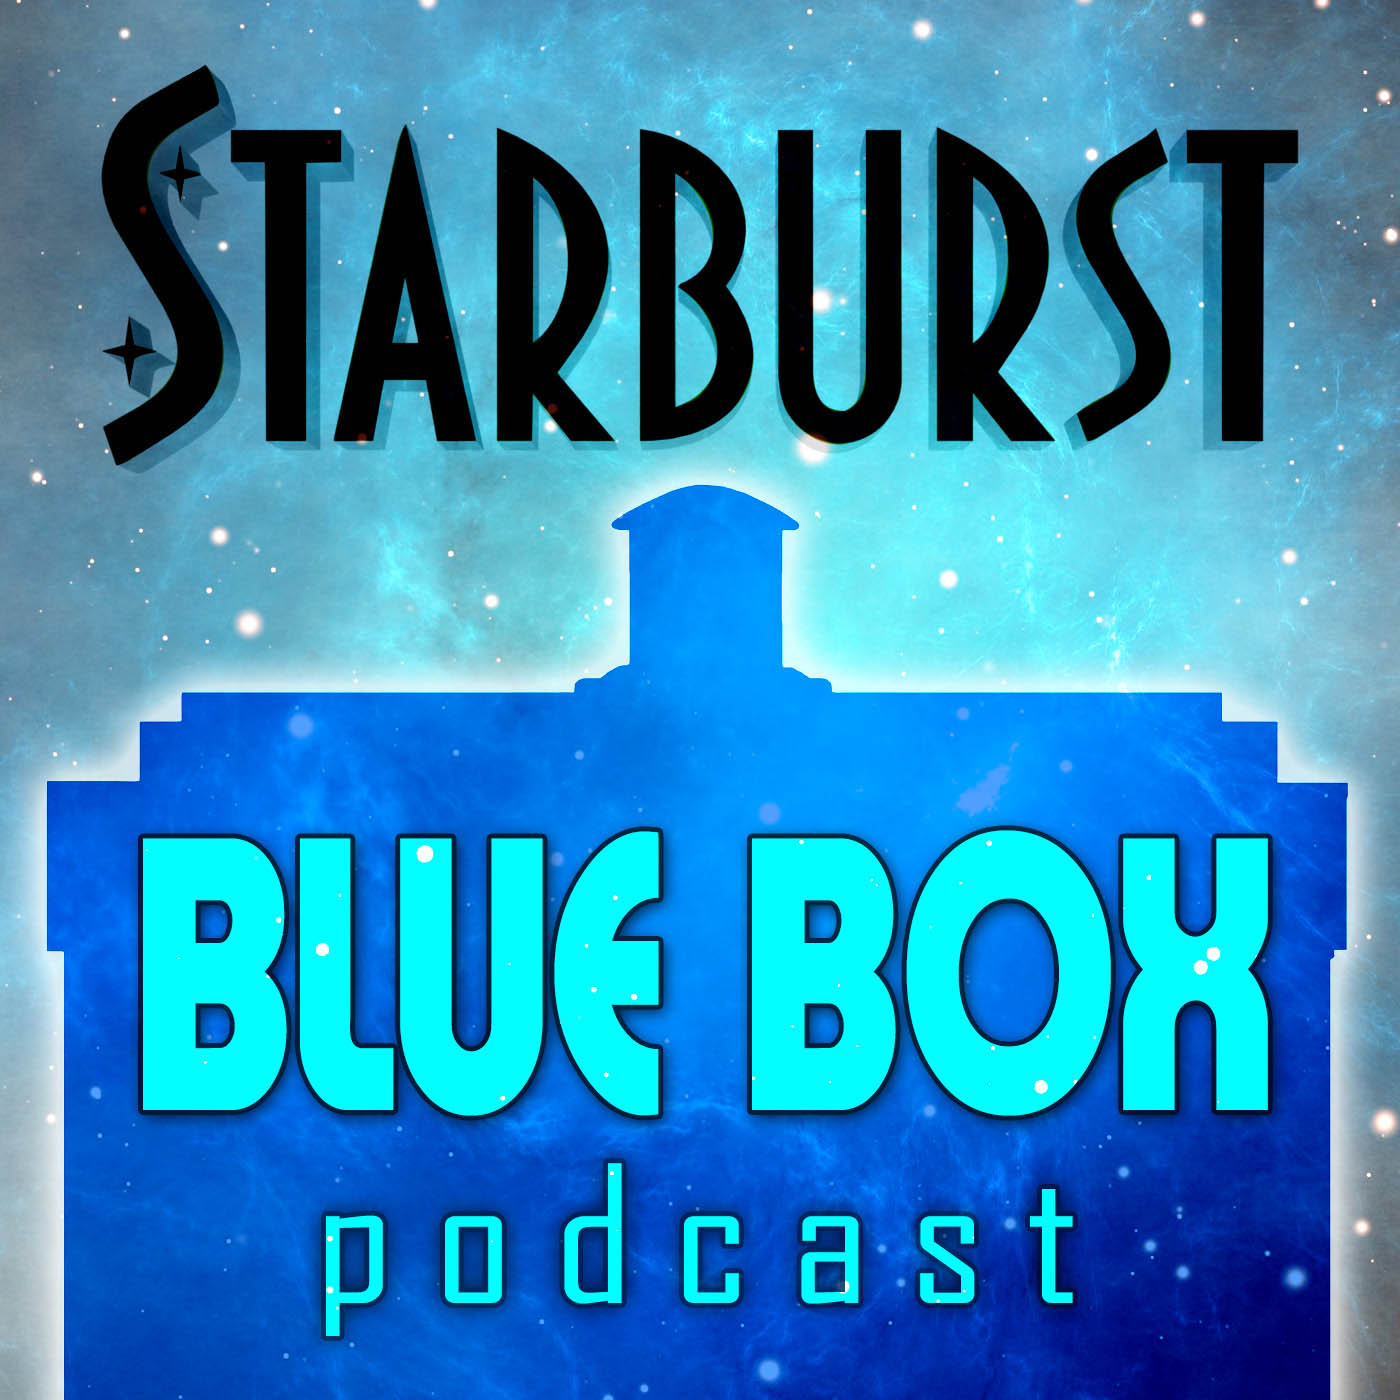 The Blue Box Podcast